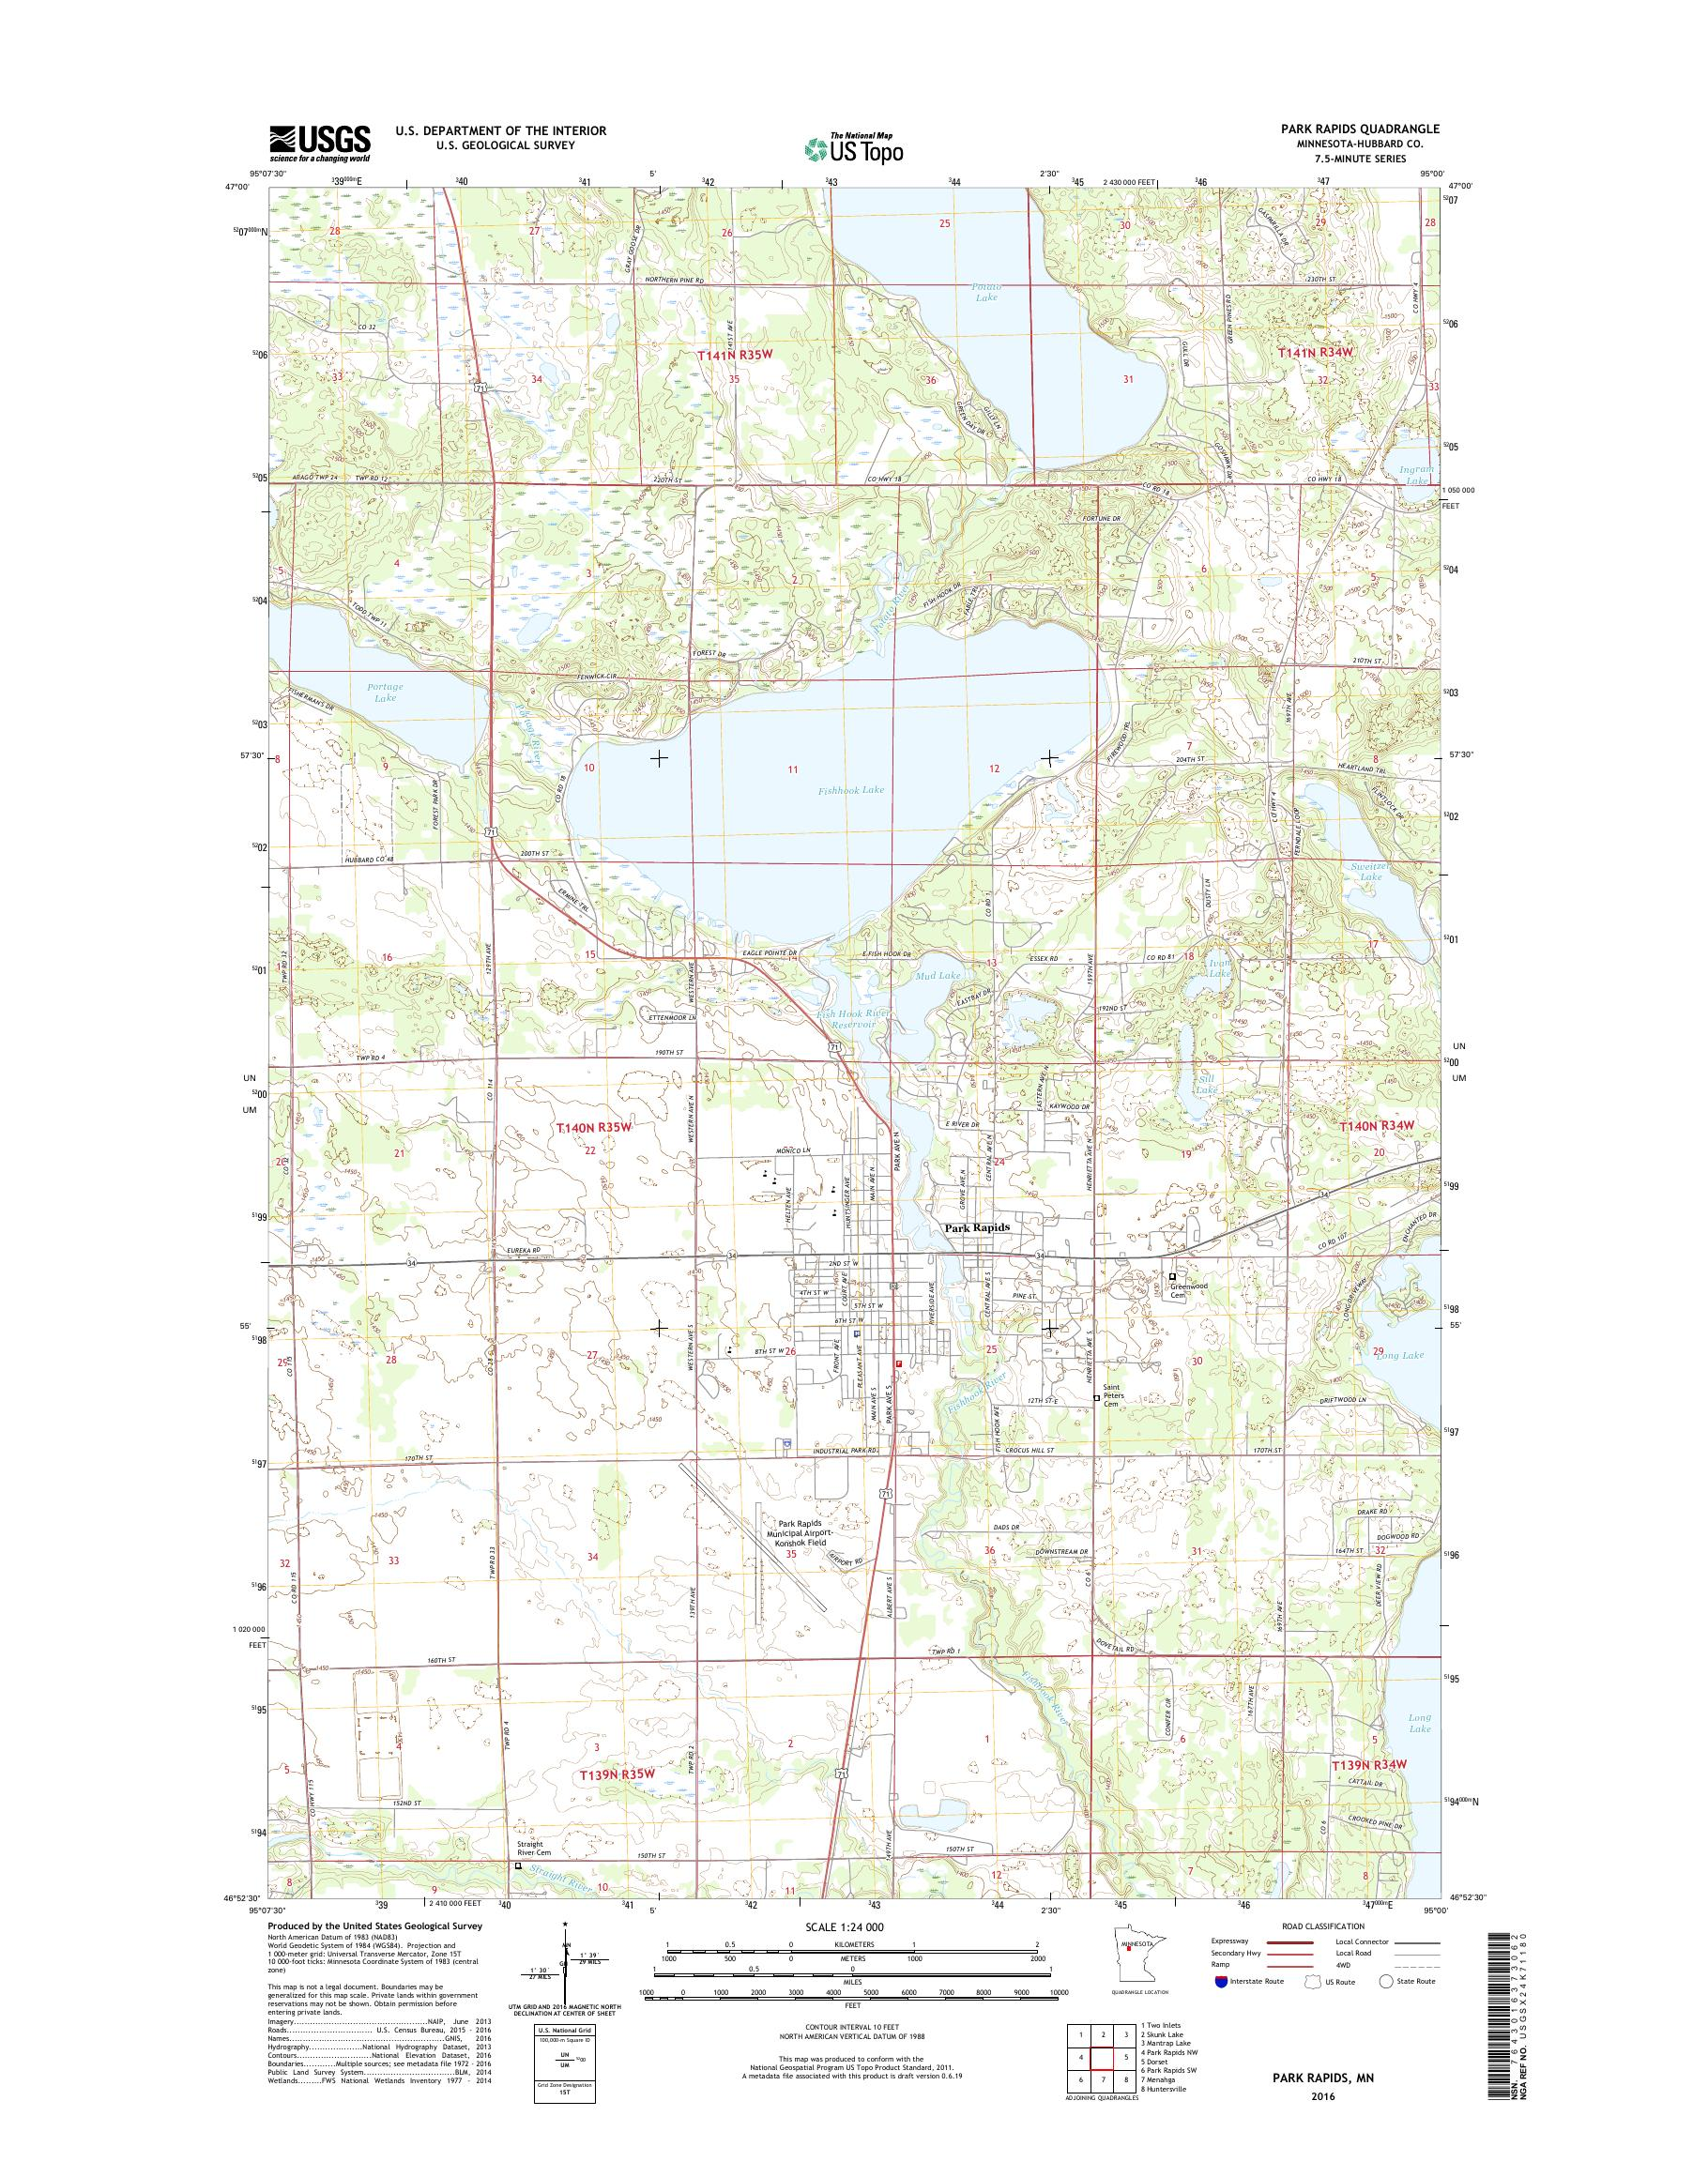 MyTopo Park Rapids, Minnesota USGS Quad Topo Map on map of angle inlet mn, map of coleraine mn, map of waubun mn, map of truman mn, map sauk rapids, map of littlefork mn, map of south saint paul mn, map of minnesota, map of east grand forks mn, map of graceville mn, map of zumbro falls mn, map of fairfax mn, map of utica mn, map of claremont mn, map of ogilvie mn, map of parkers prairie mn, map of brainerd mn, map of chisholm mn, map of brook park mn, map of erskine mn,